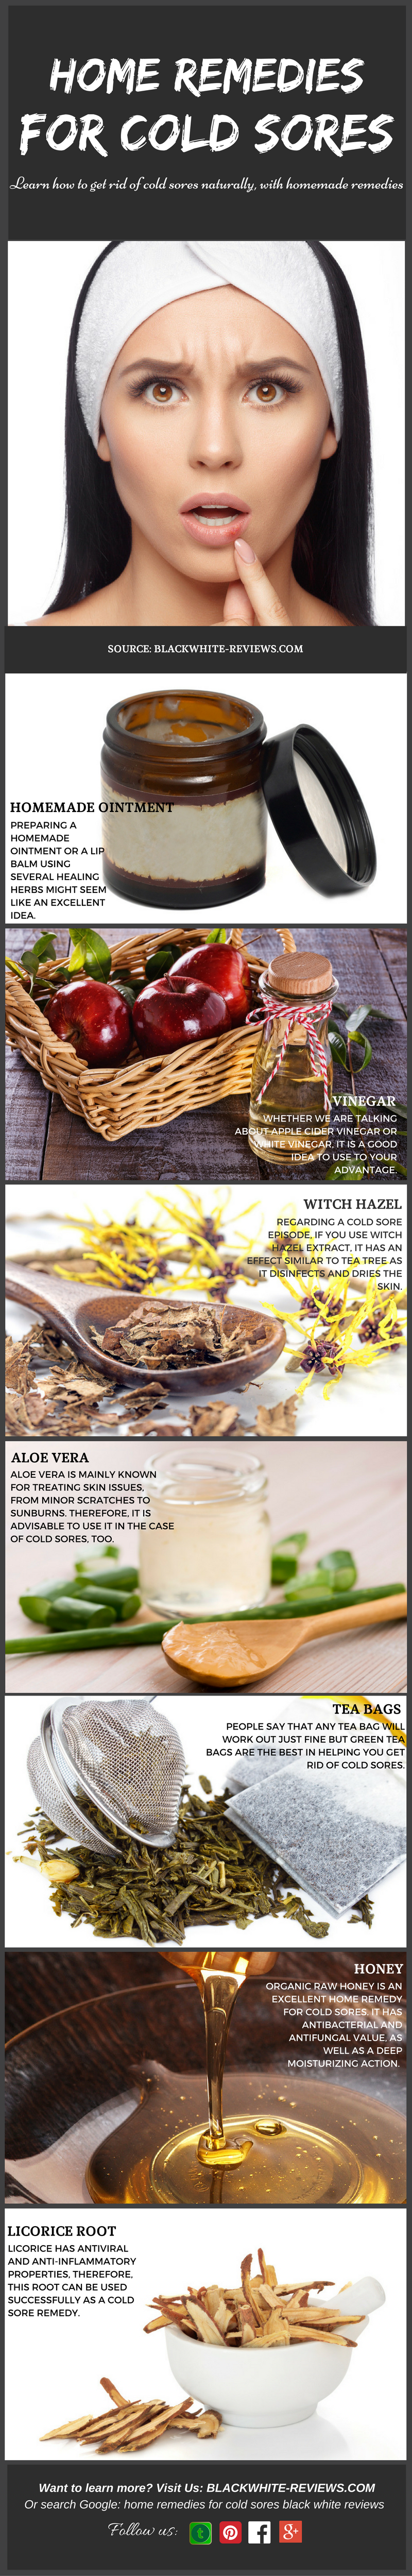 cold sore home remedies -infographic